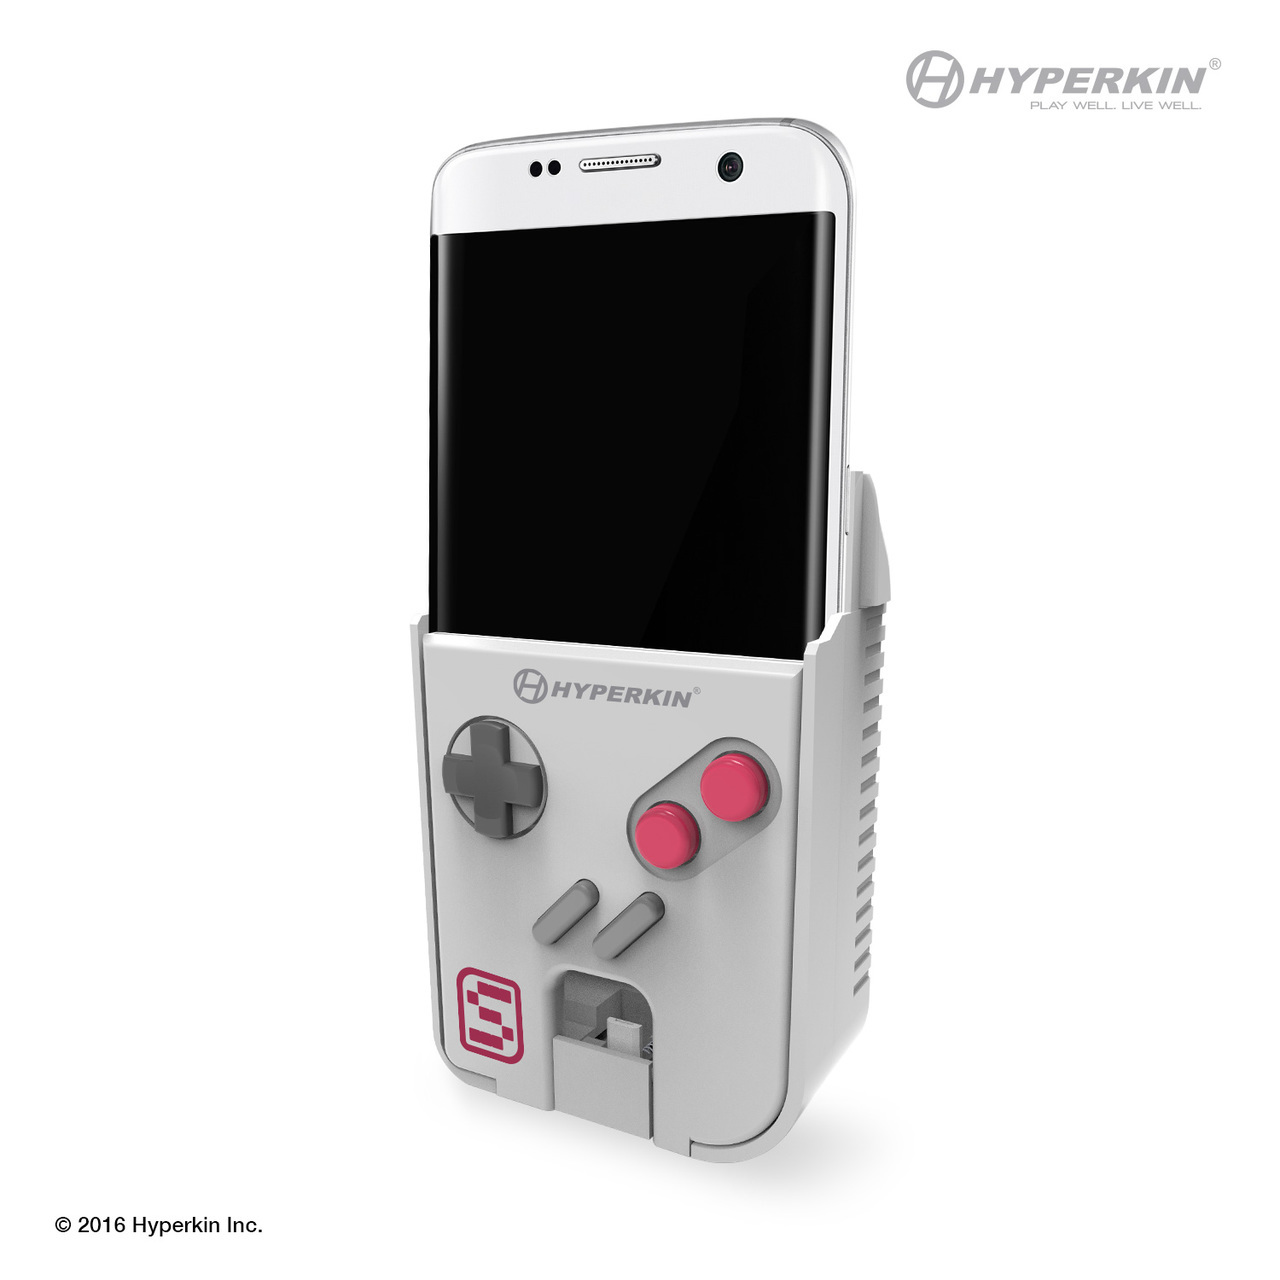 coque-gameboy-pour-smartphone-hyperkin-smart boy-02